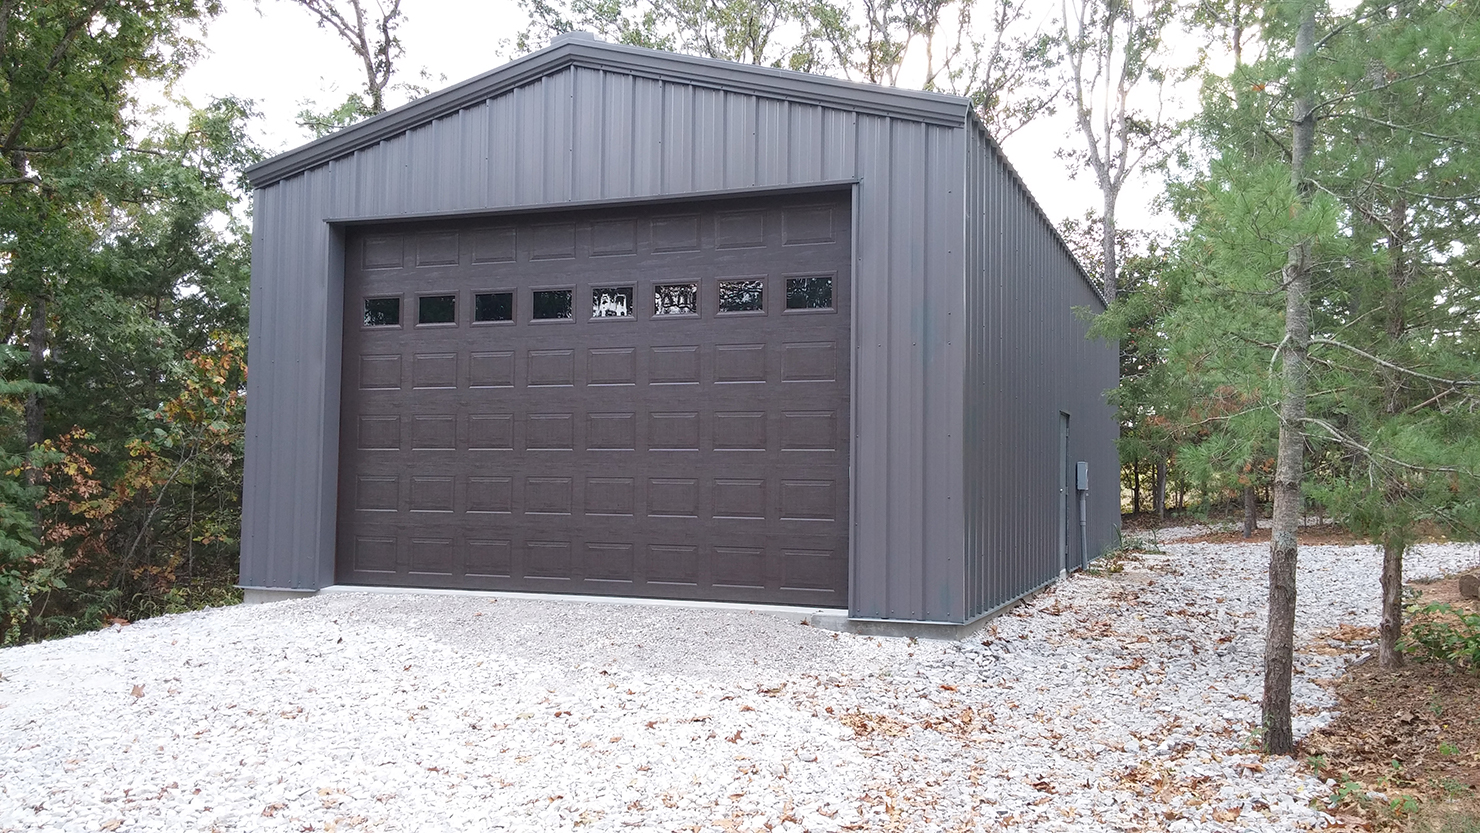 Garages the Best Way to Improve Home Value